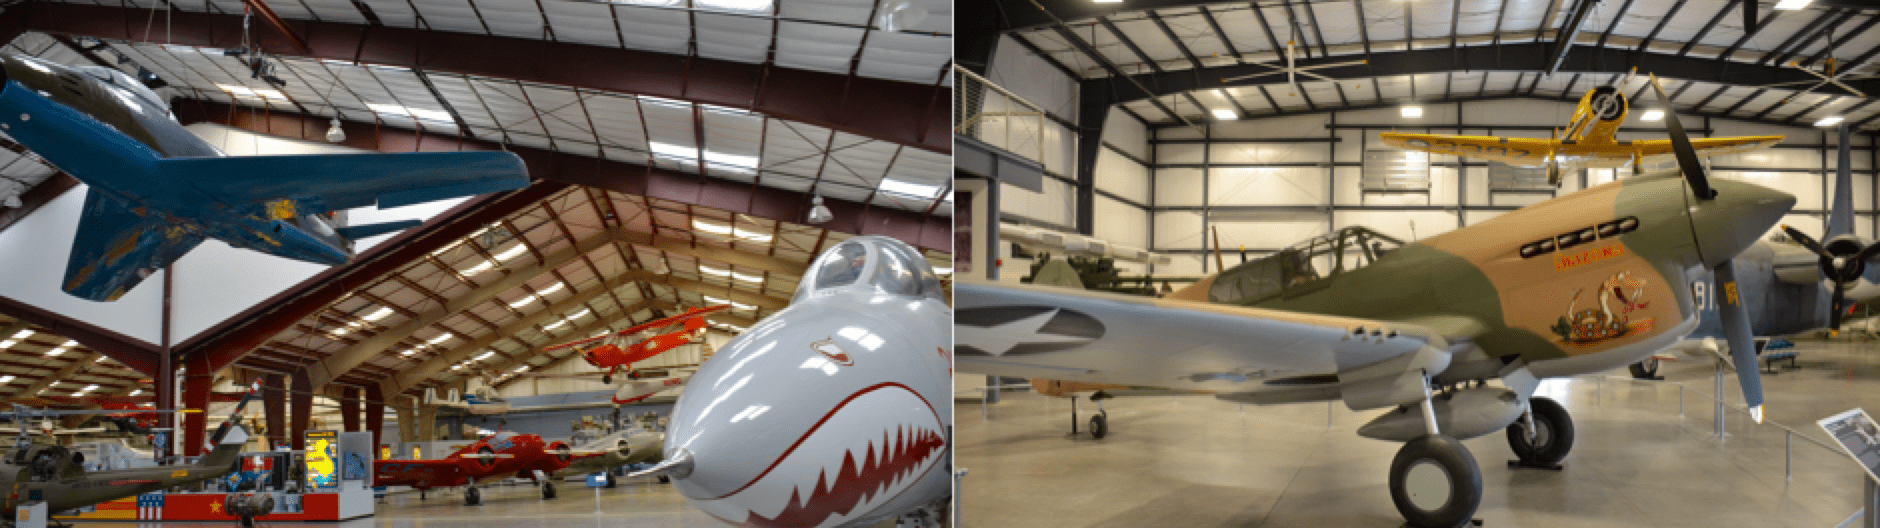 Pima Air & Space Museum allows visitors to explore the full history of flight - Discover Tucson discover tucson From Astronomy to Gastronomy: Discover Tucson at the 2019 INMR WORLD CONGRESS Pima Air Space Museum allows visitors to explore the full history of flight